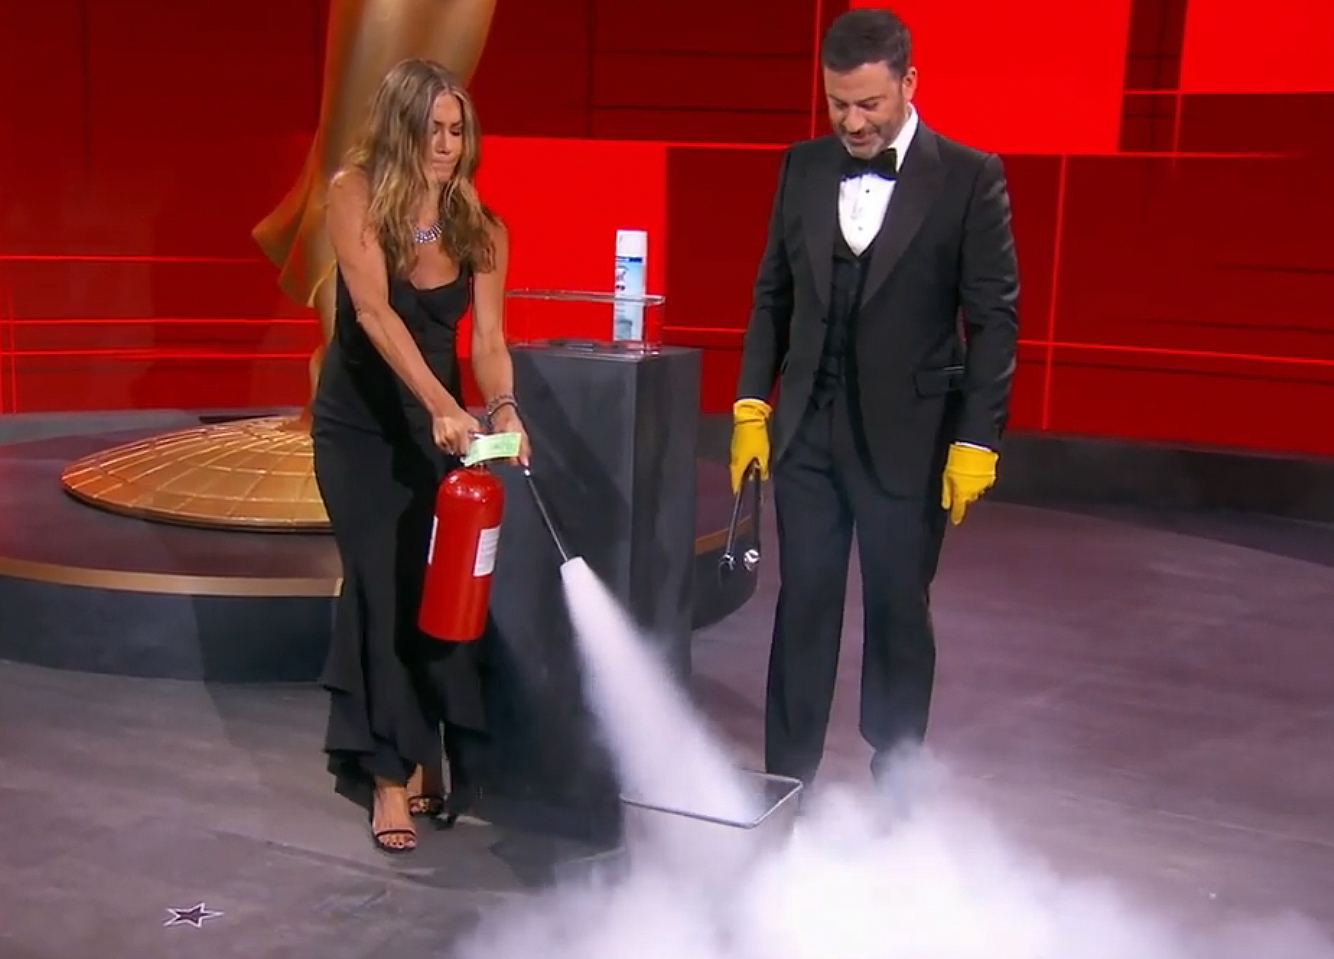 jennifer aniston; jimmy kimmel emmys 2020